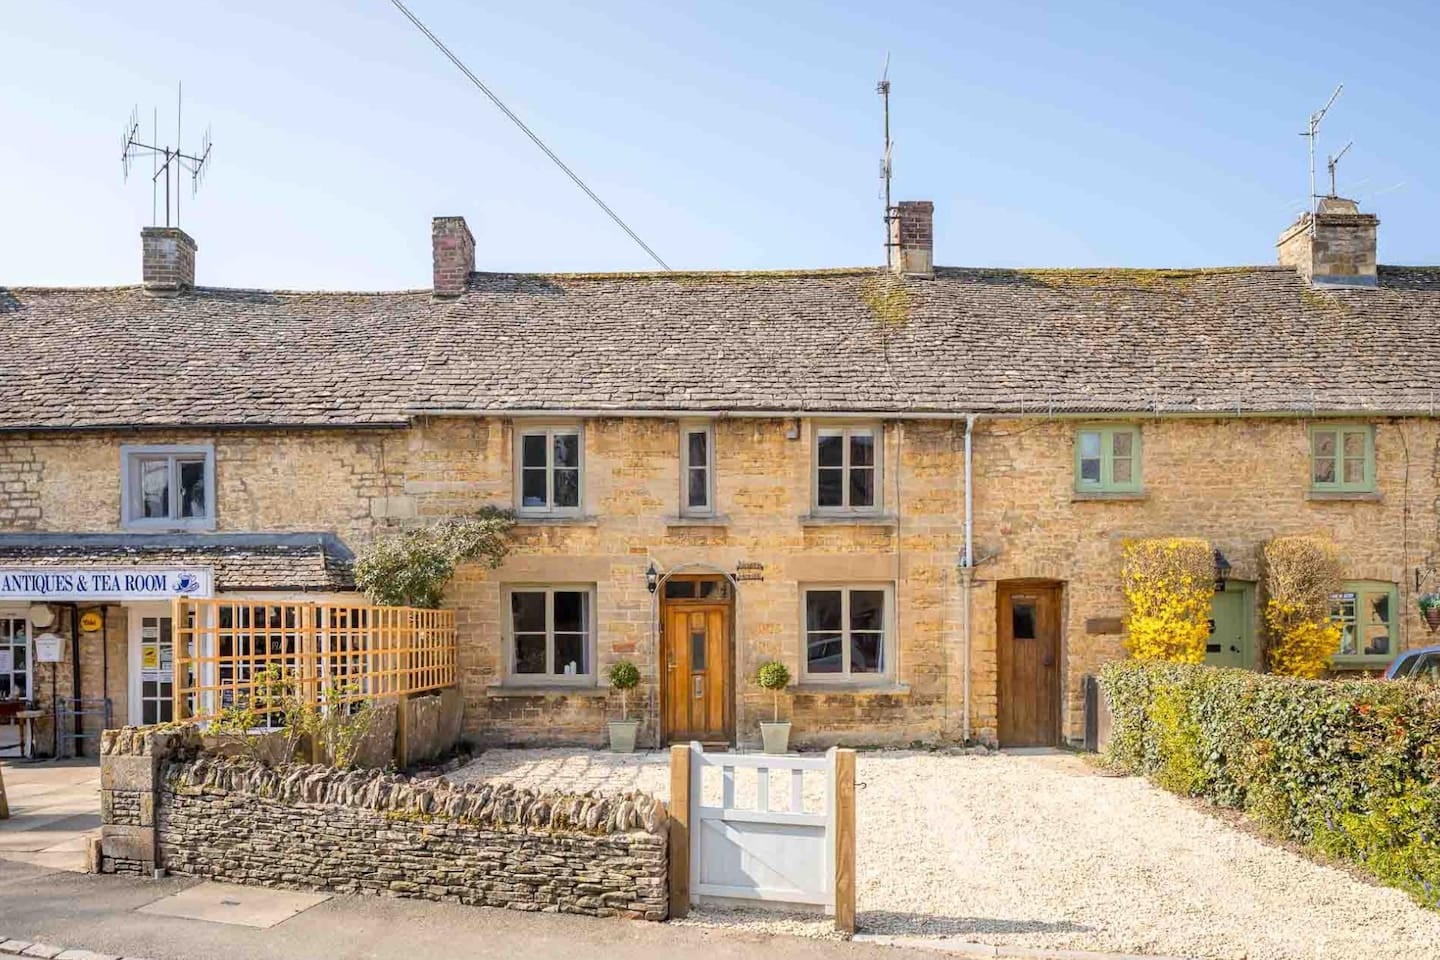 Welcome to North House in the lovely Cotswold village of Bourton-on-the-Water